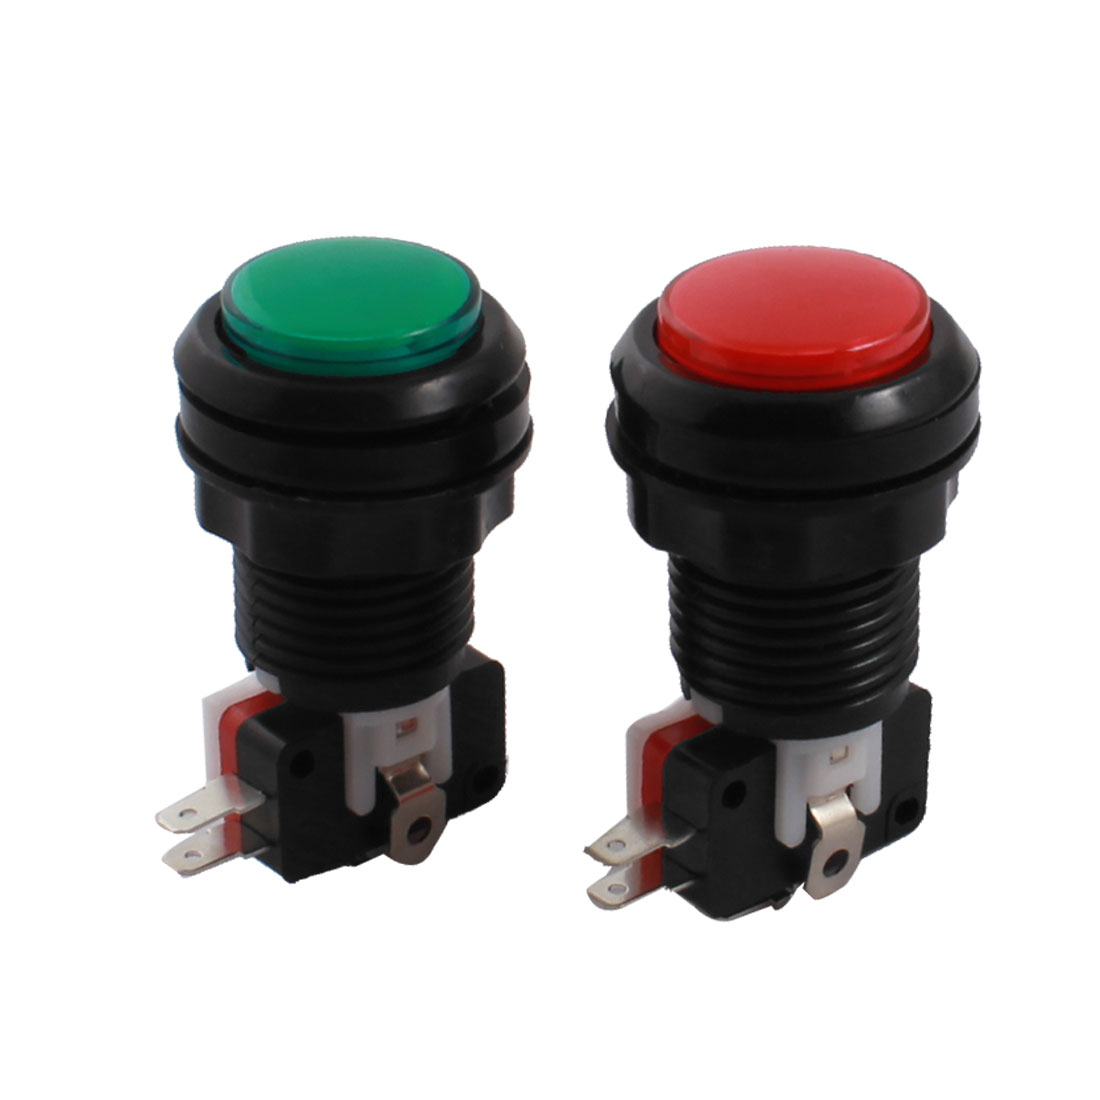 DC 12V SPDT Red Green Light Momentary Game Machine Arcade Push Button Micro Switch 2Pcs